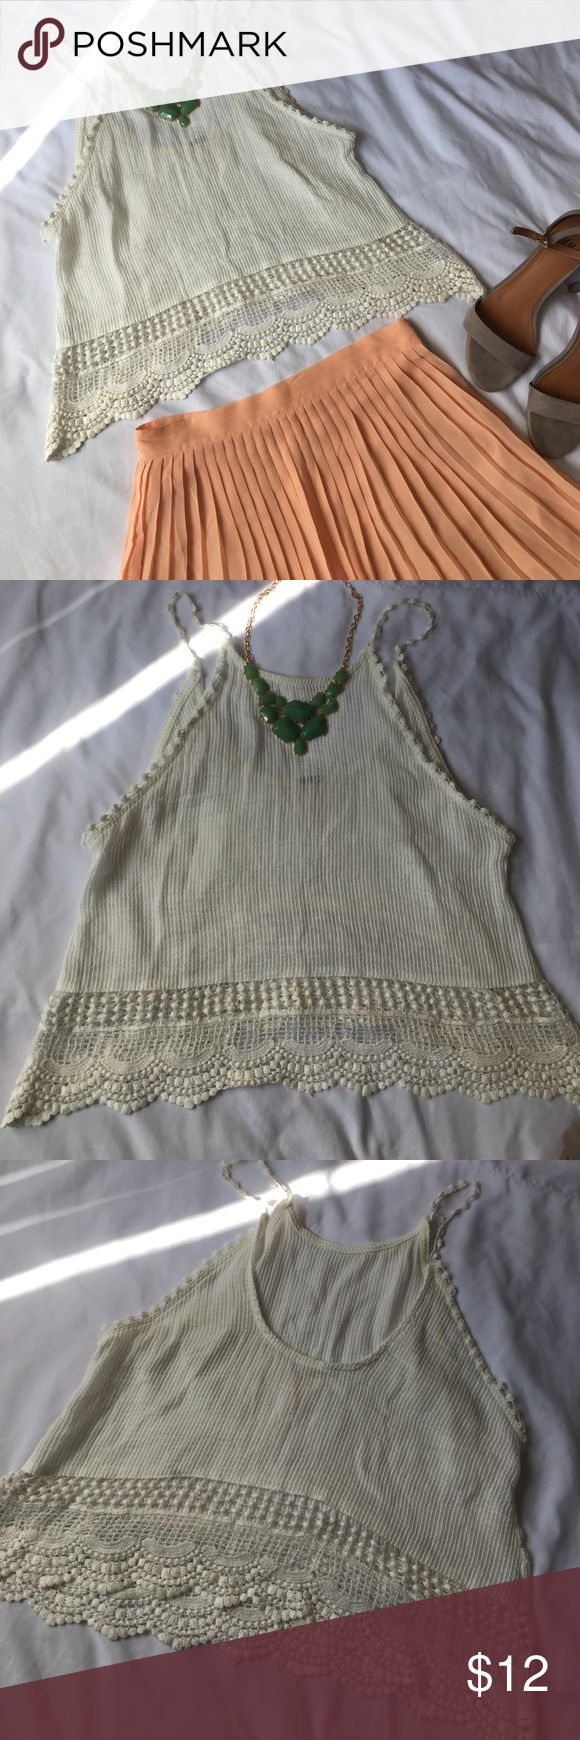 Crop top Cute embroidered crop top, NWOT, never been worn. Could be worn with a maxi dress or simply some distress light wash jeans and cute high heel sandals. Brand is proof. Not forever 21, tagged for exposure. Featured shoes are also for sale. Forever 21 Tops Crop Tops